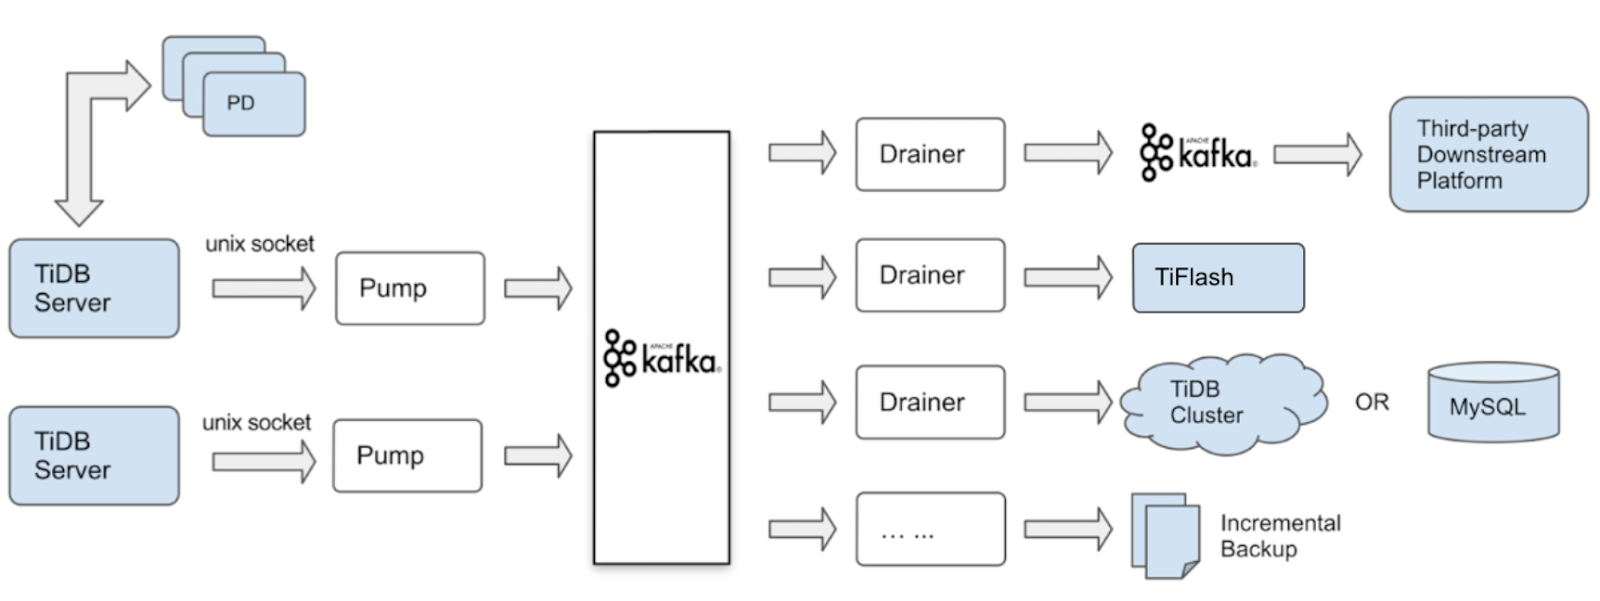 The architecture of the Kafka version of TiDB Binlog